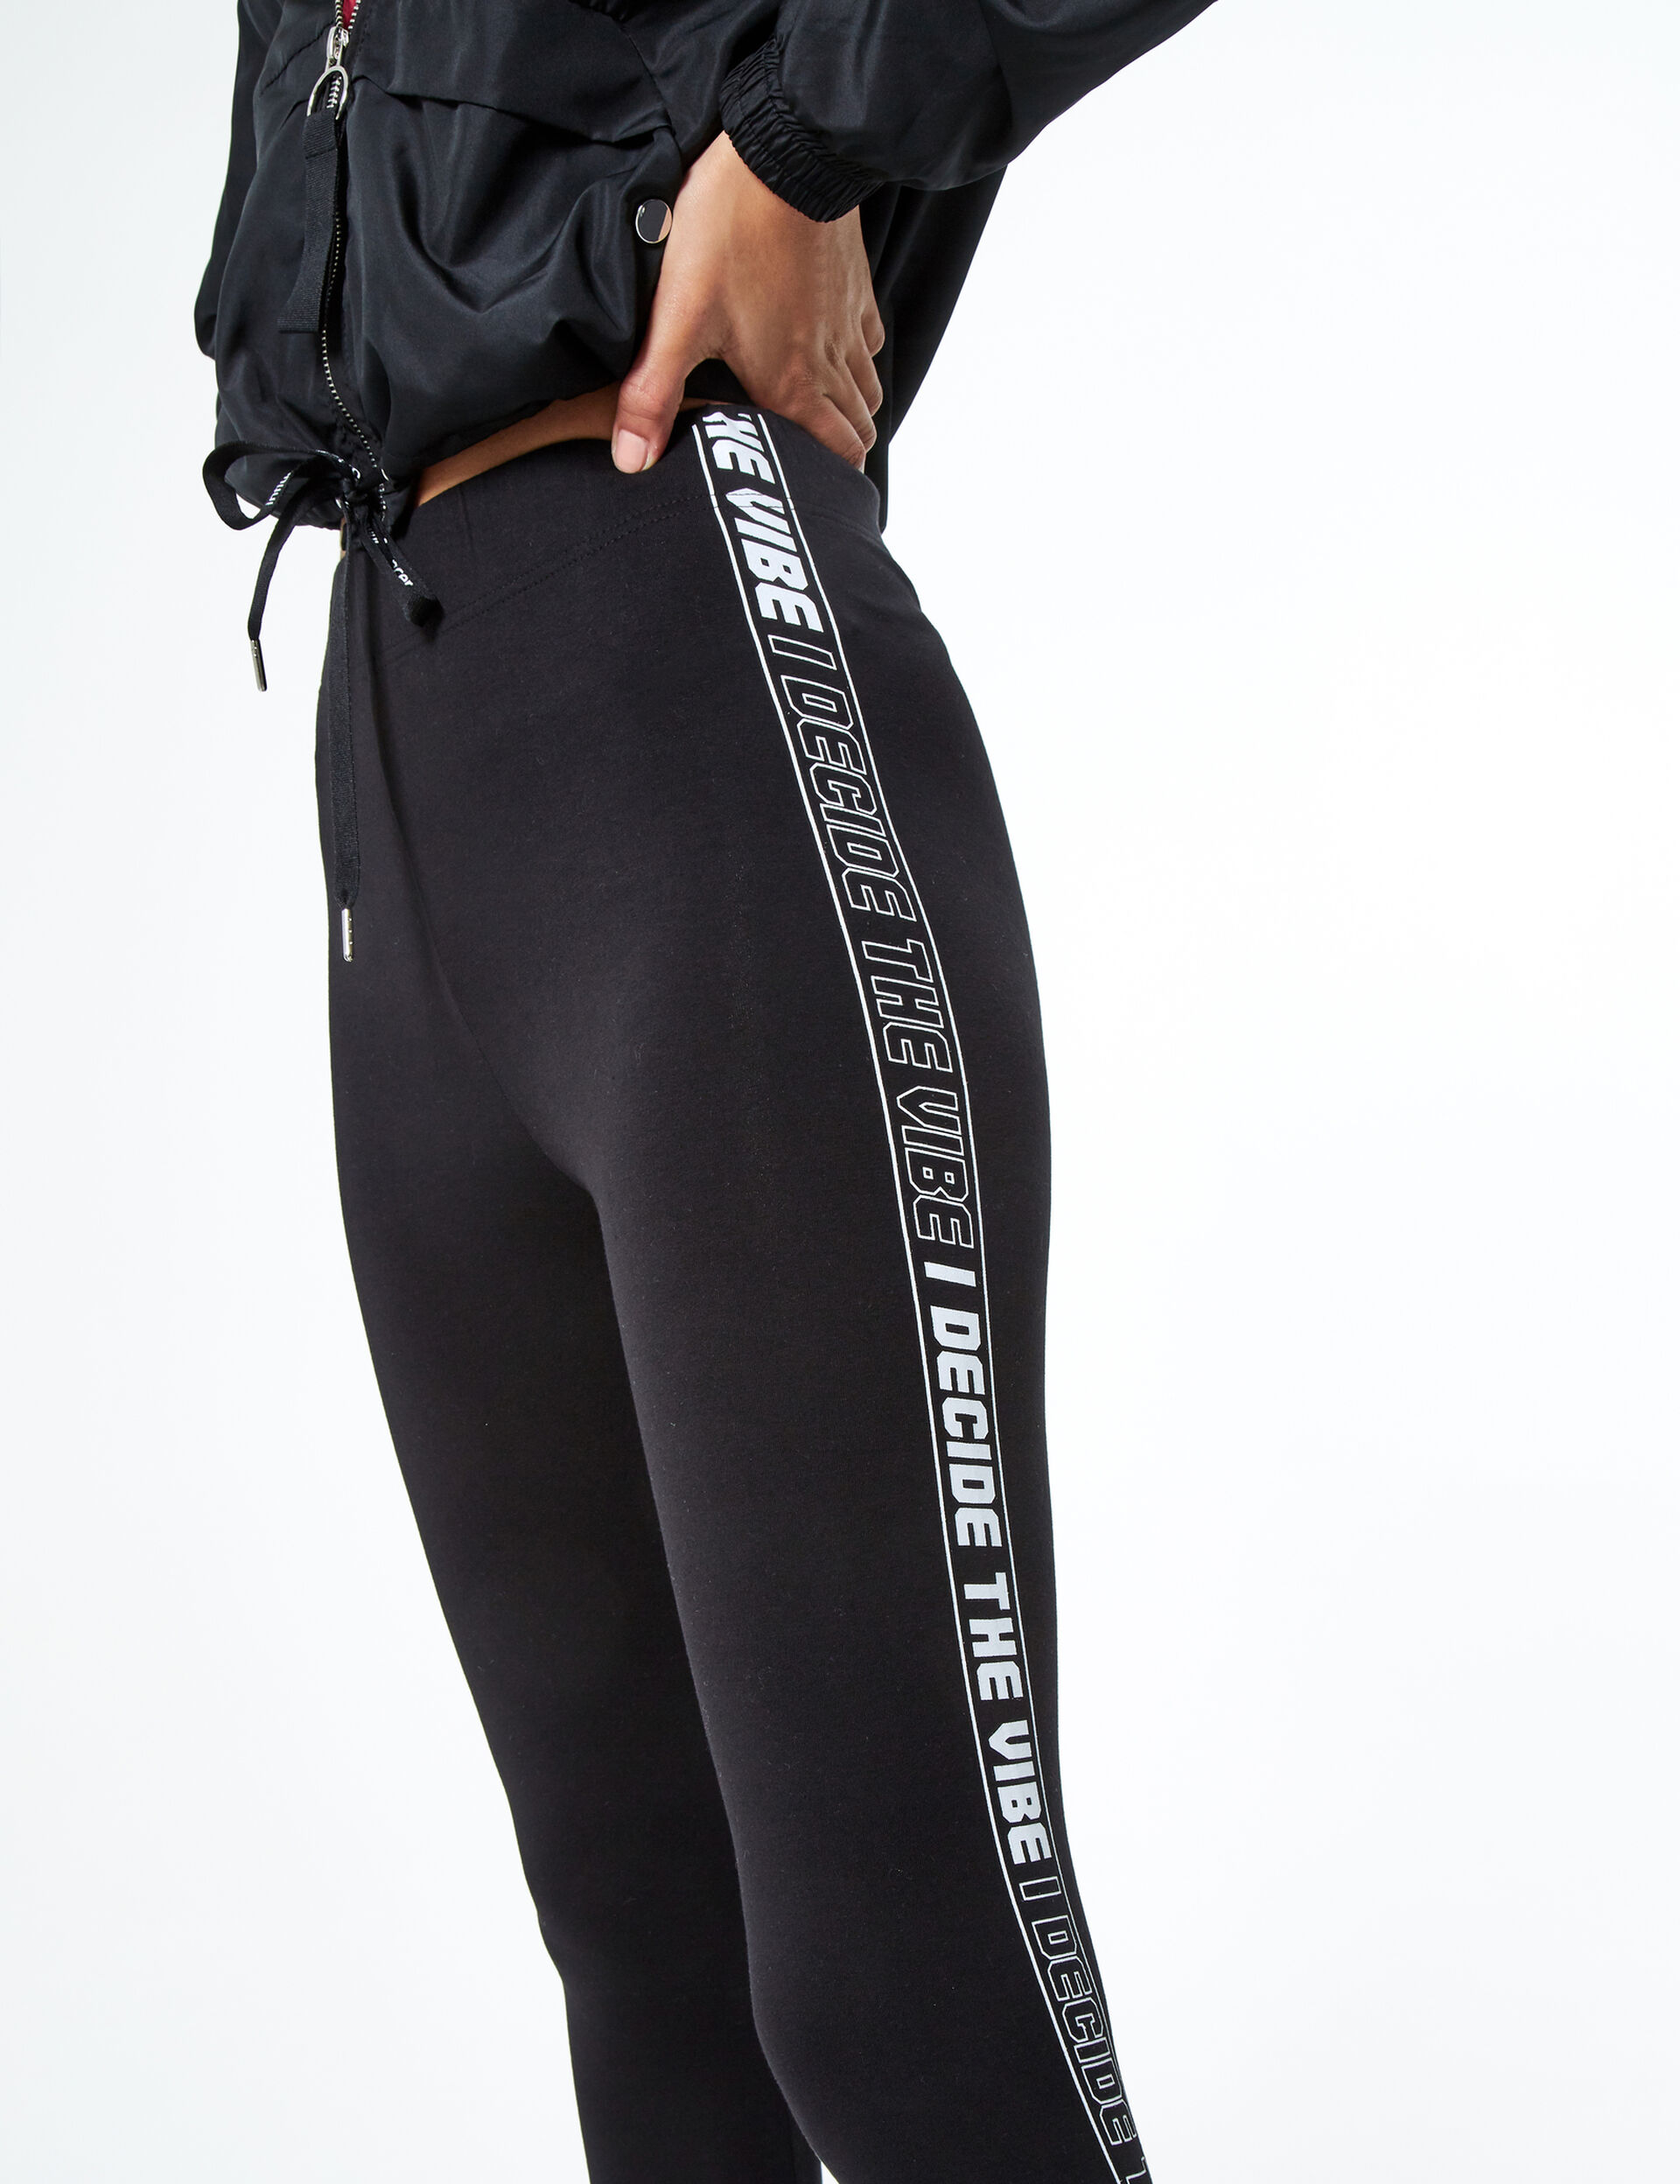 Leggings with text design trim detail